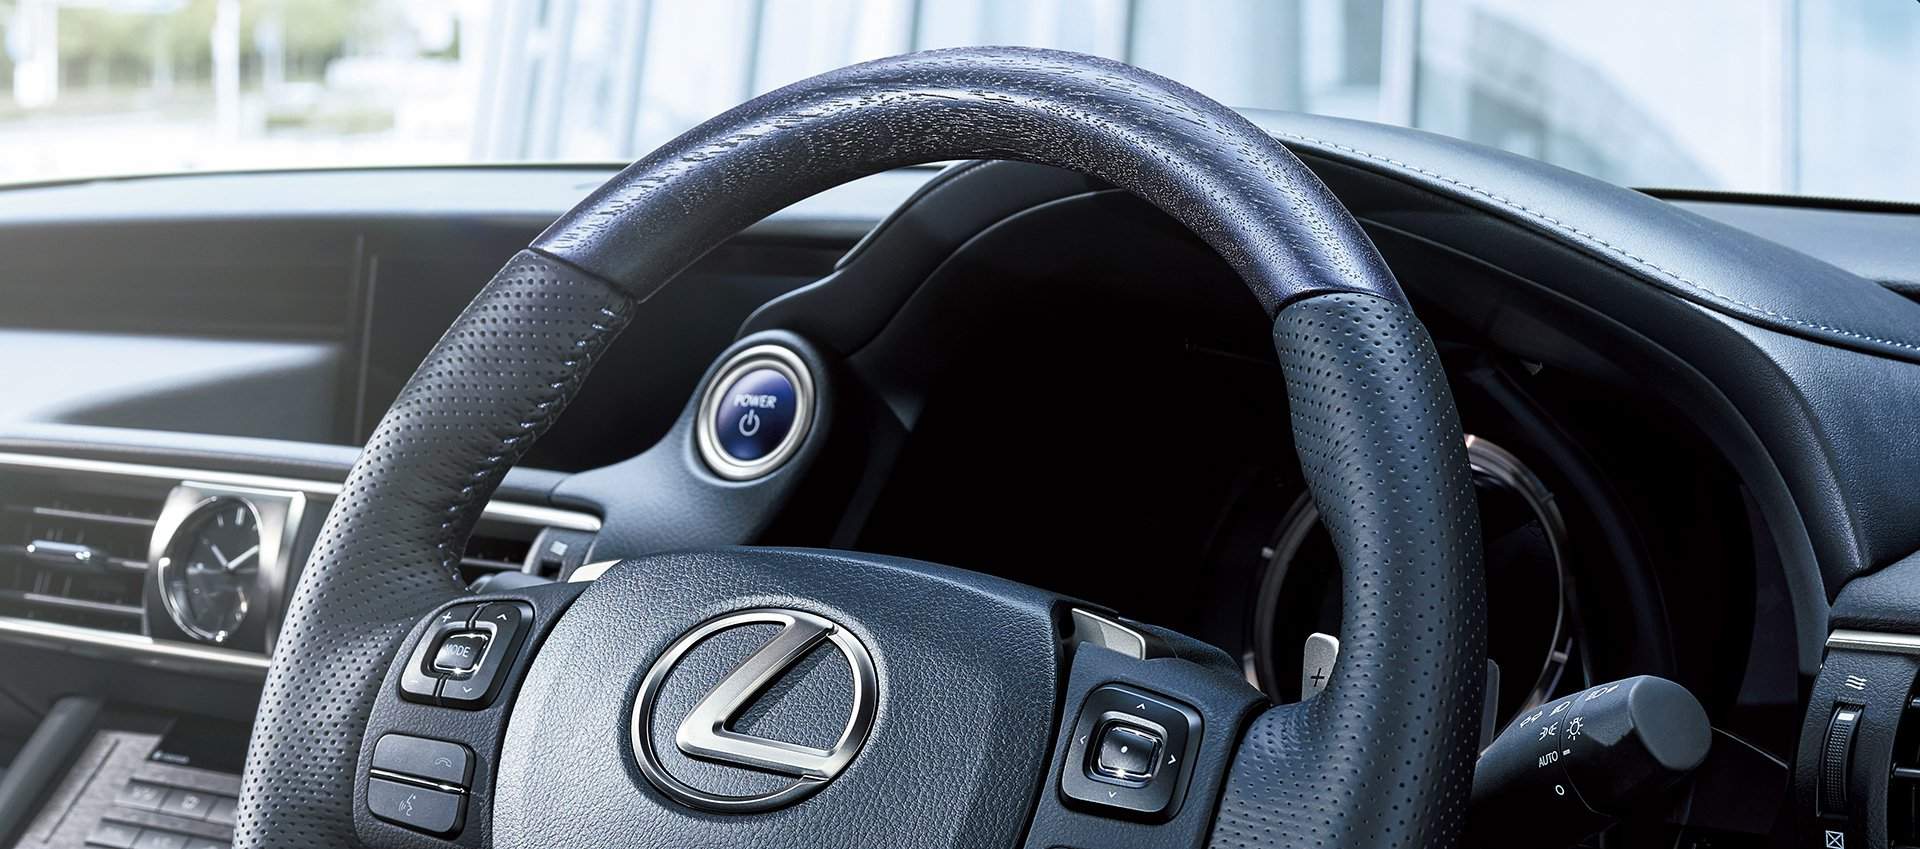 Steering Wheel from a Lexus ISF